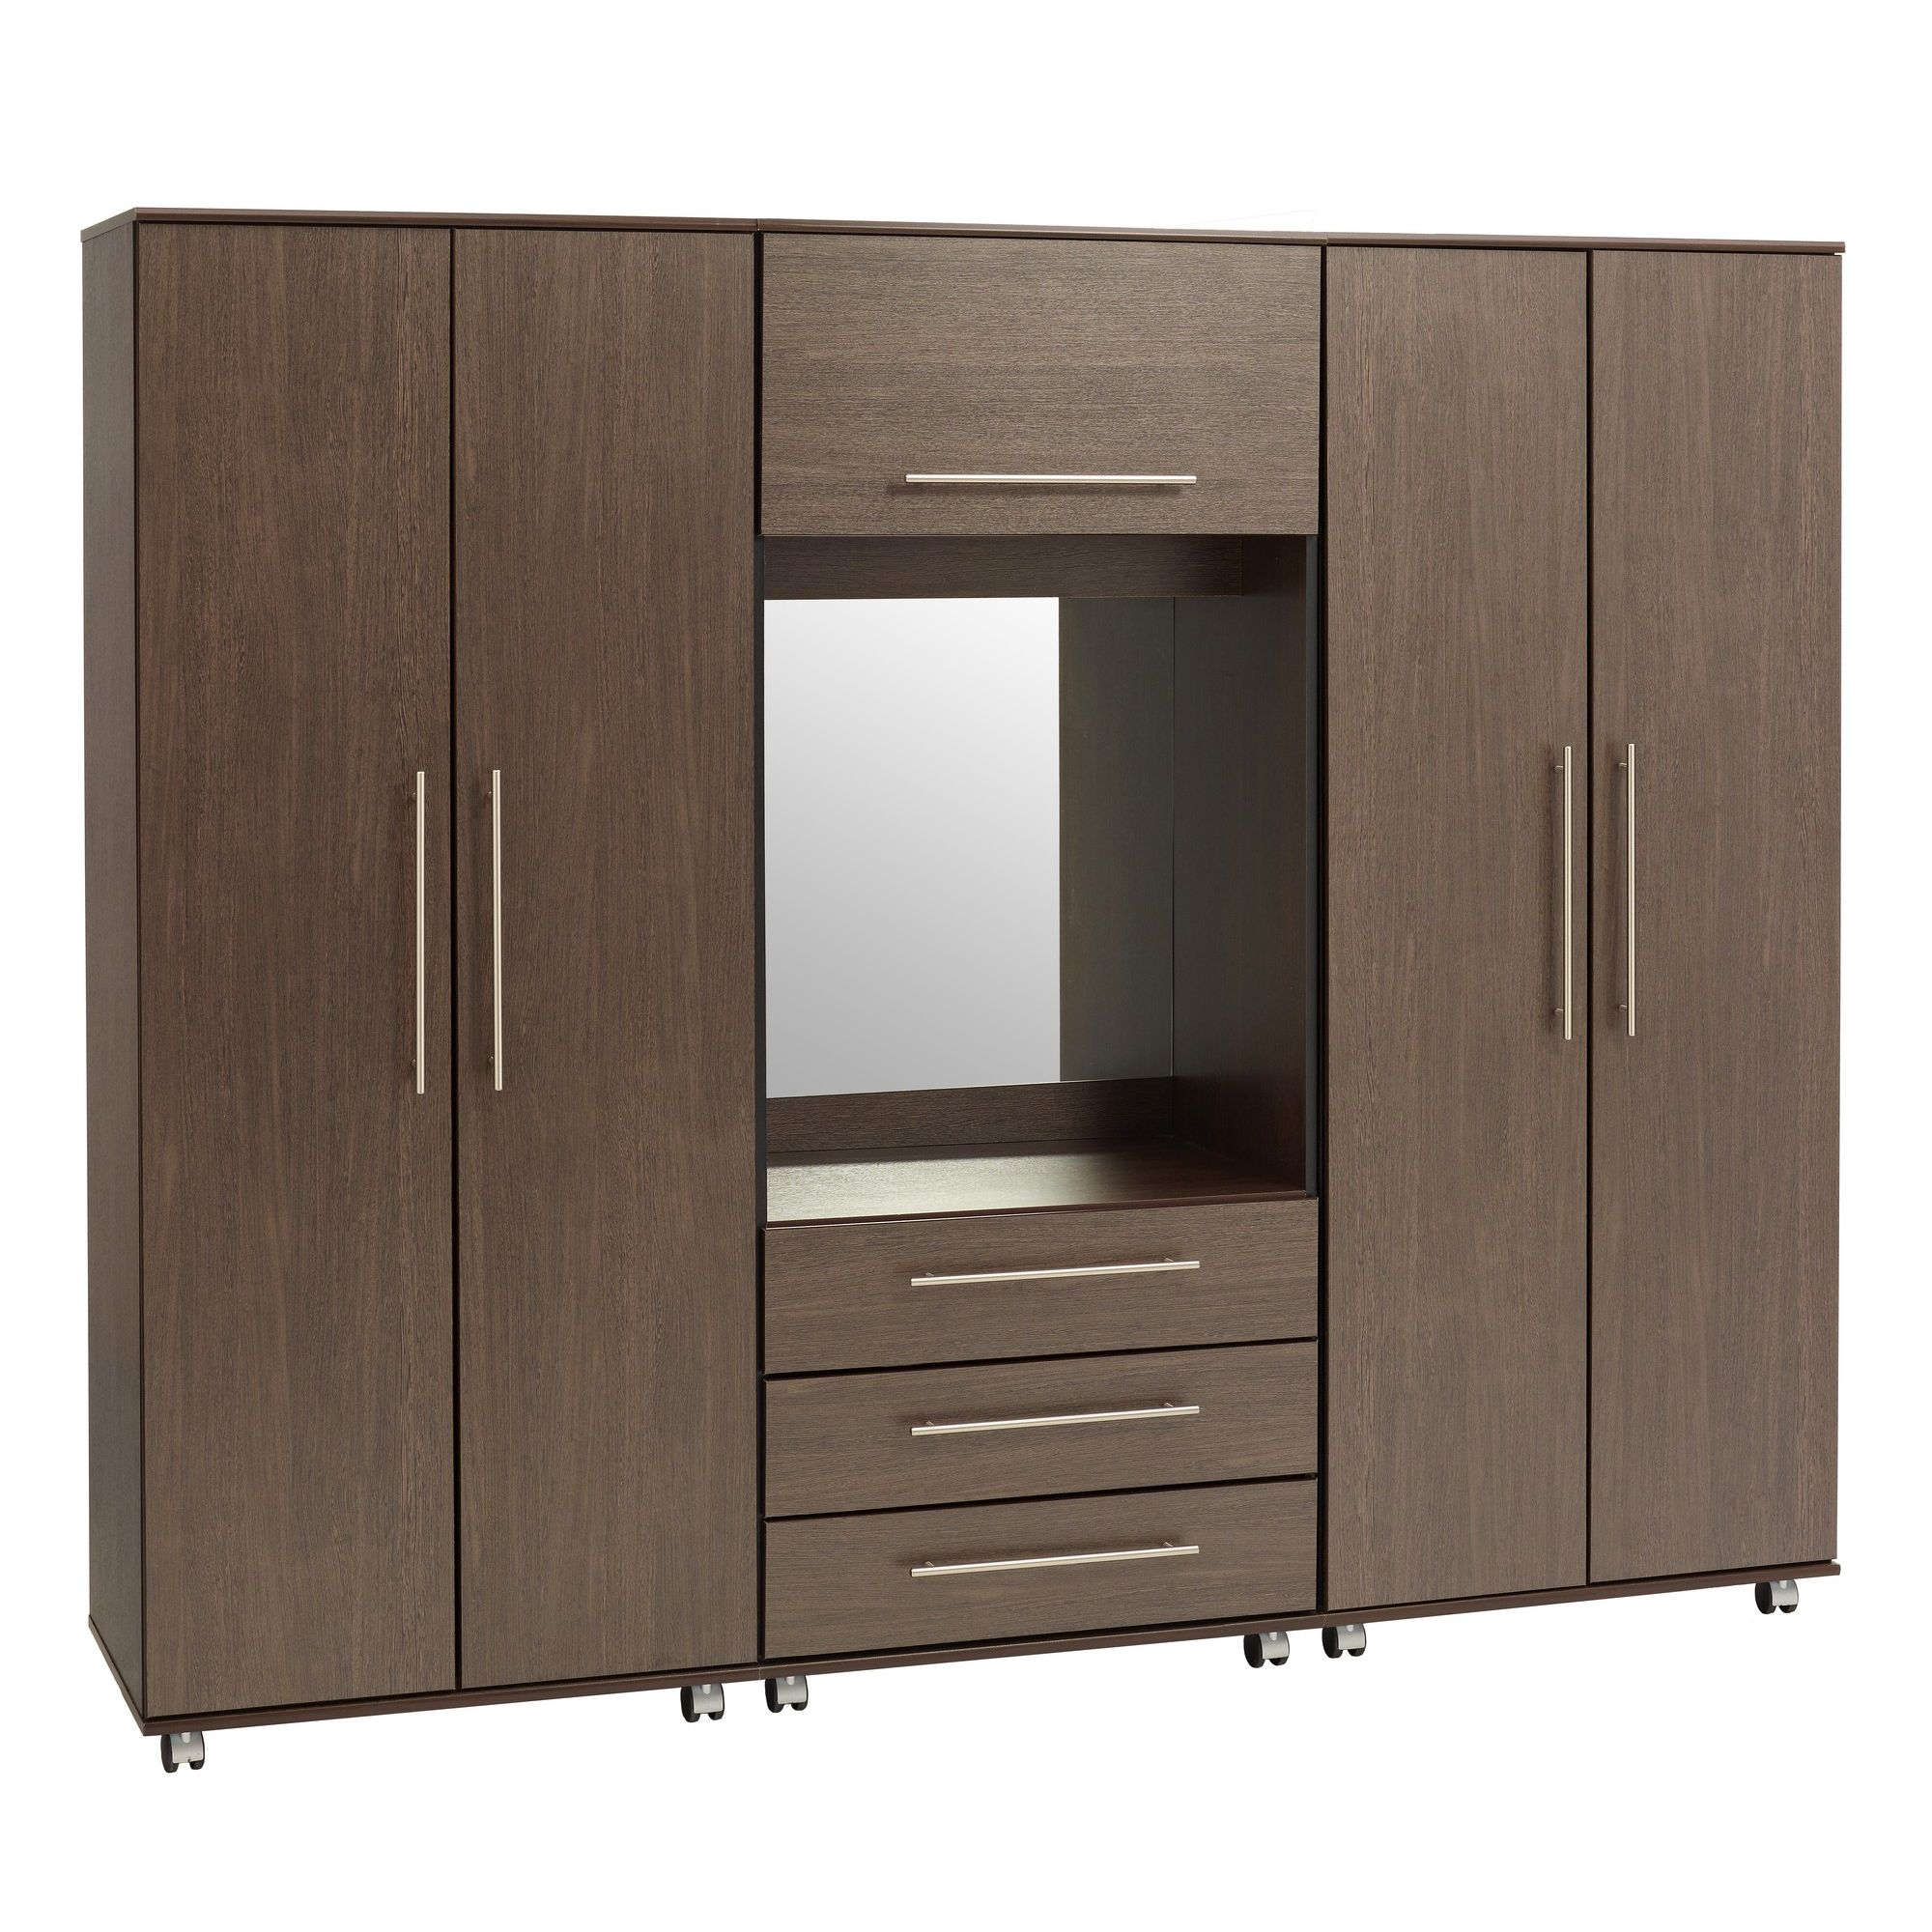 Ideal Furniture New York Fitment Wardrobe - Beech at Tesco Direct